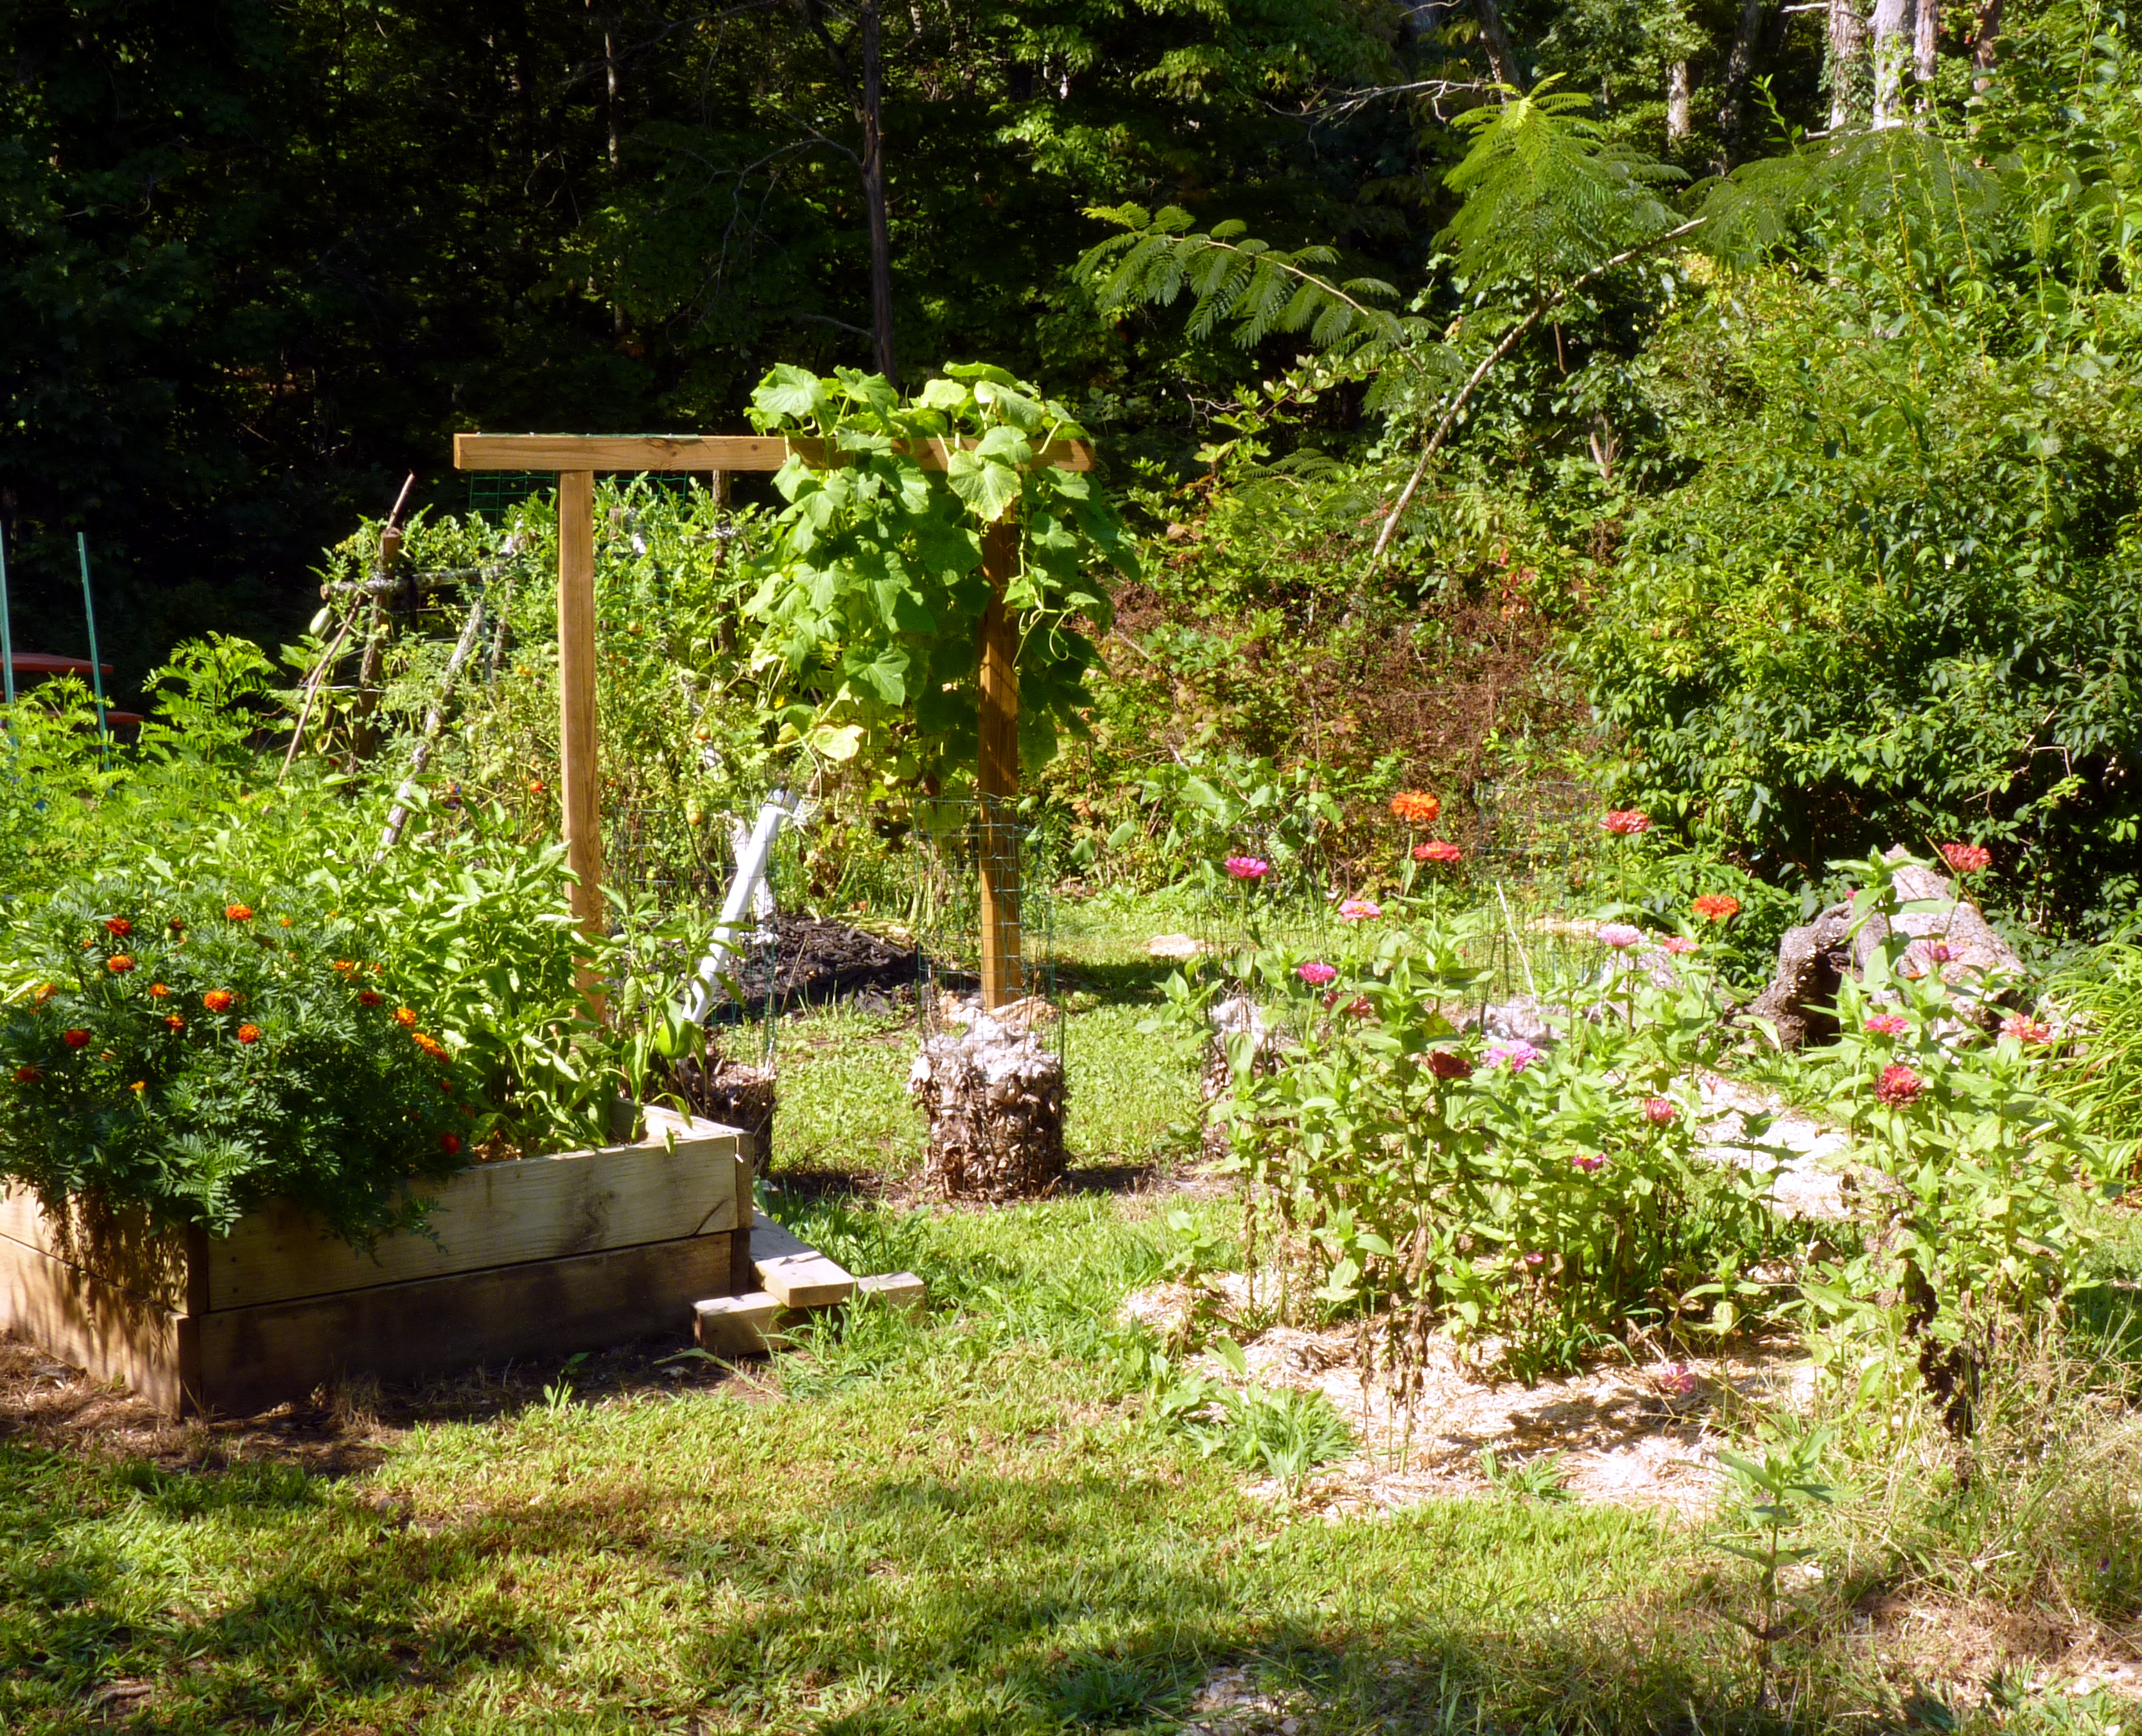 looking access easier gardening proper raisedbedgardening have those are garden excellent beds raised for don options t a soil way to traditional who gardens mixes bed vegetable or an